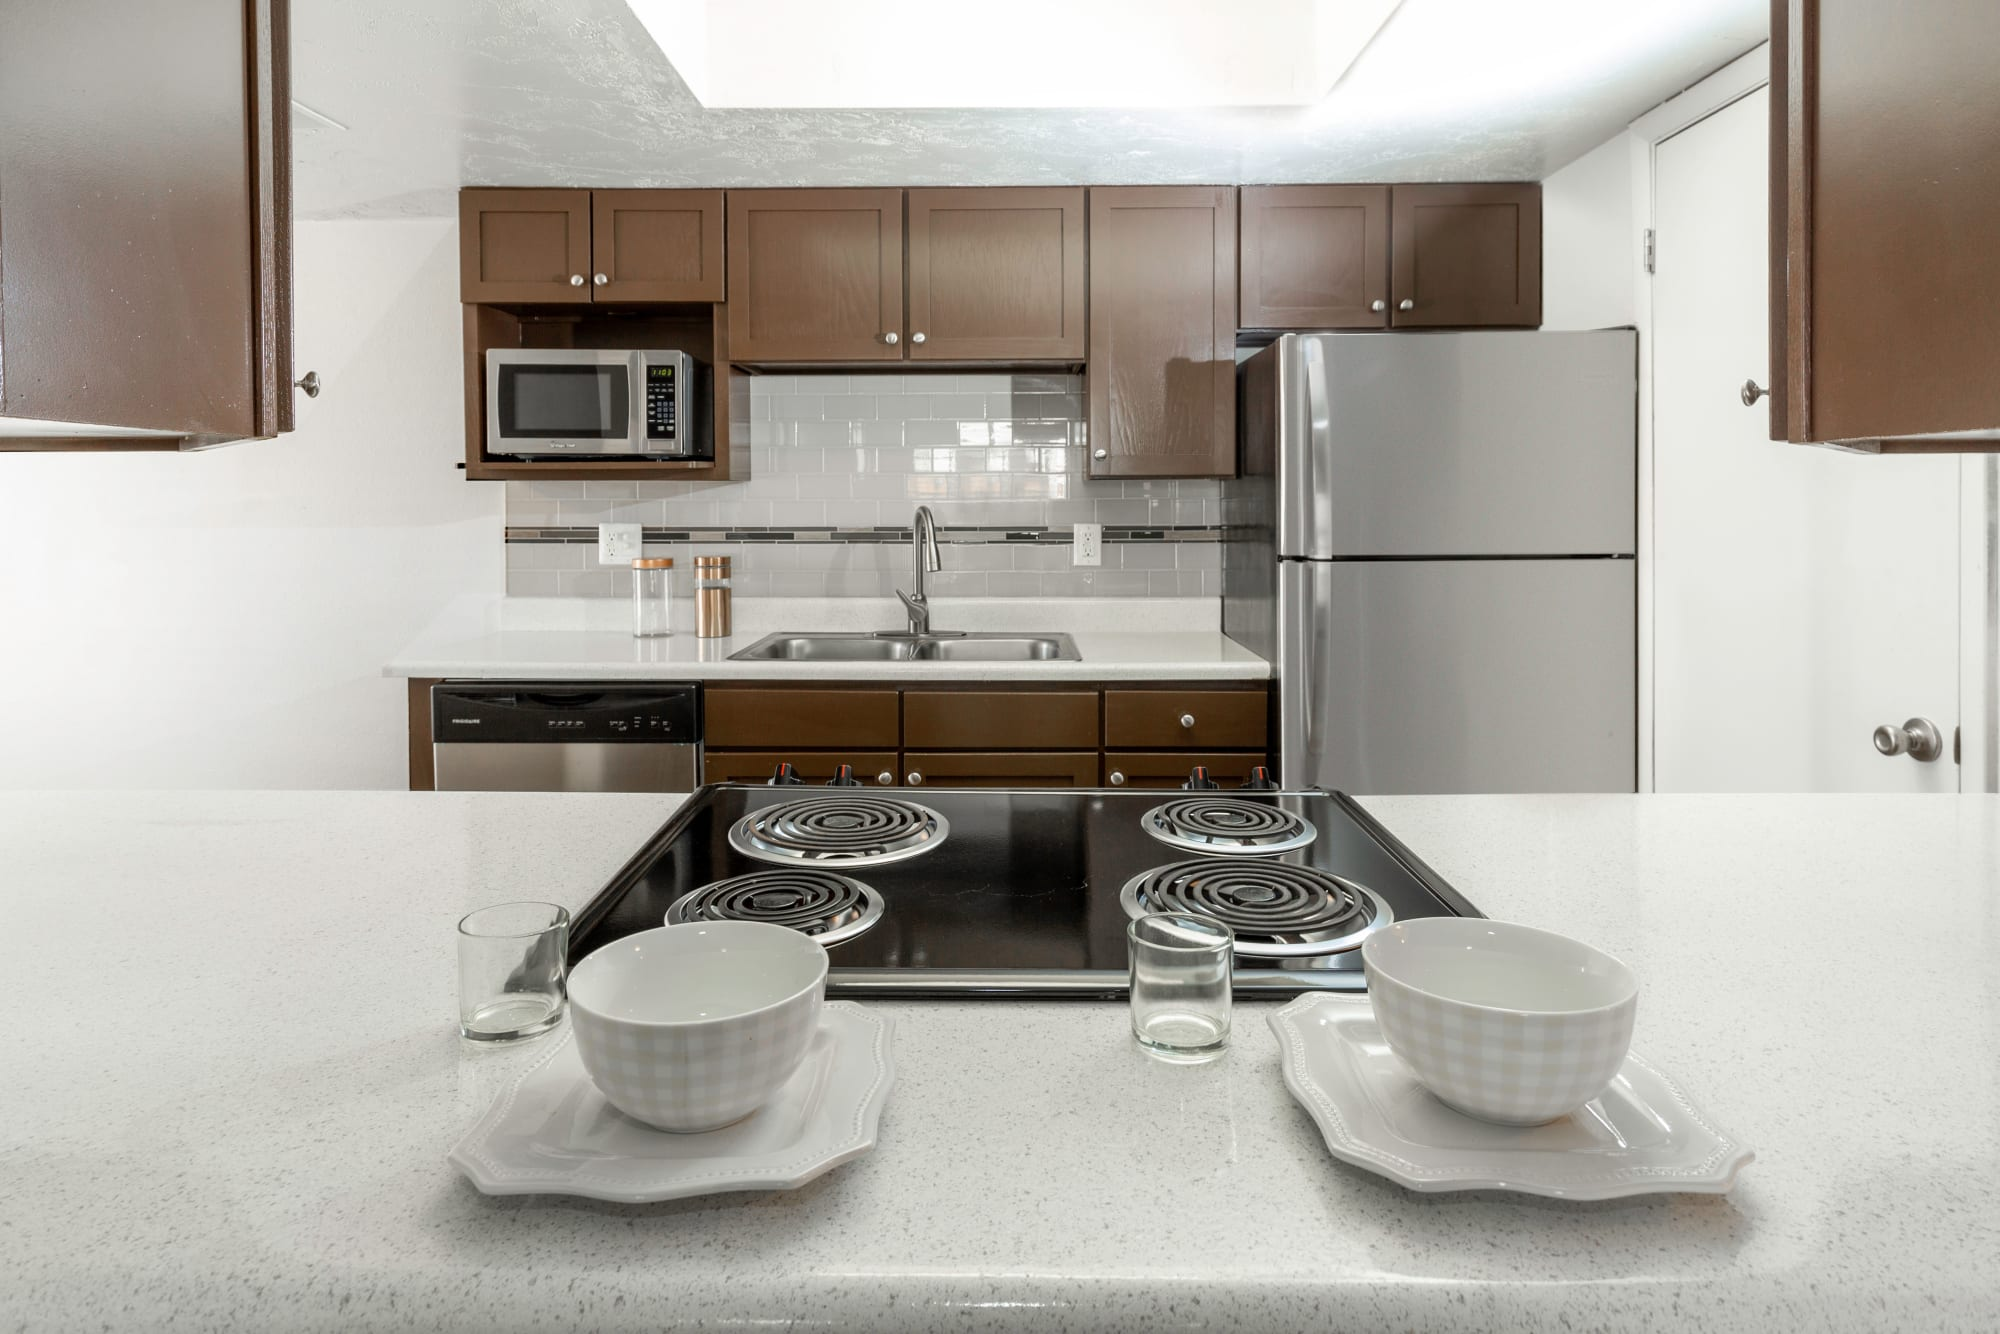 Renovated kitchen with brown cabinets at Windgate Apartments in Bountiful, Utah